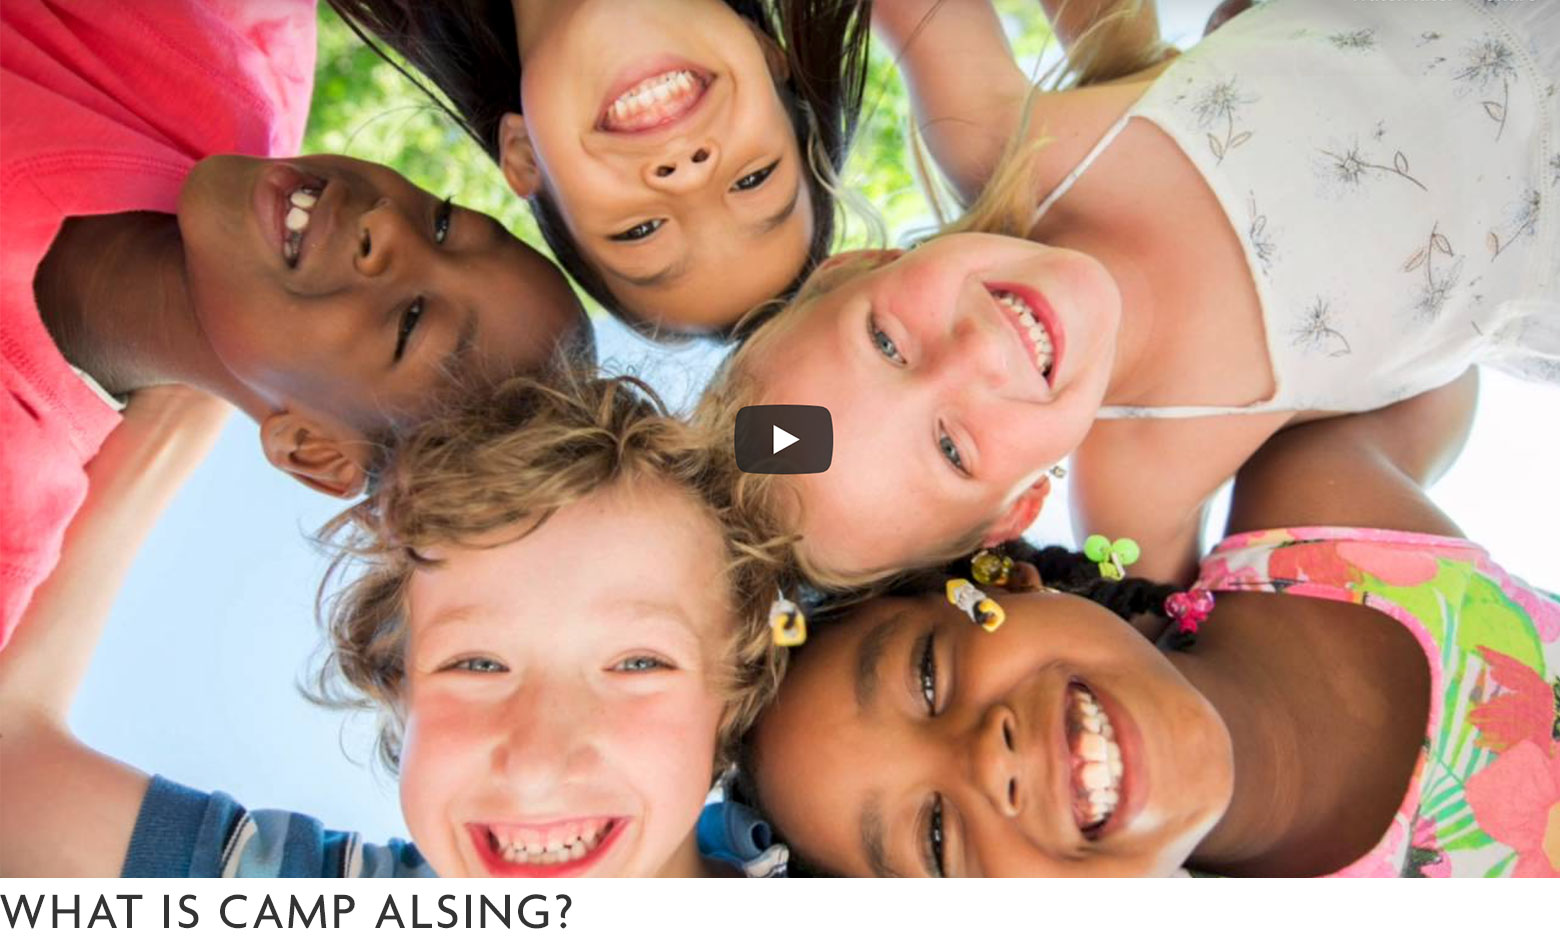 What is Camp Alsing?